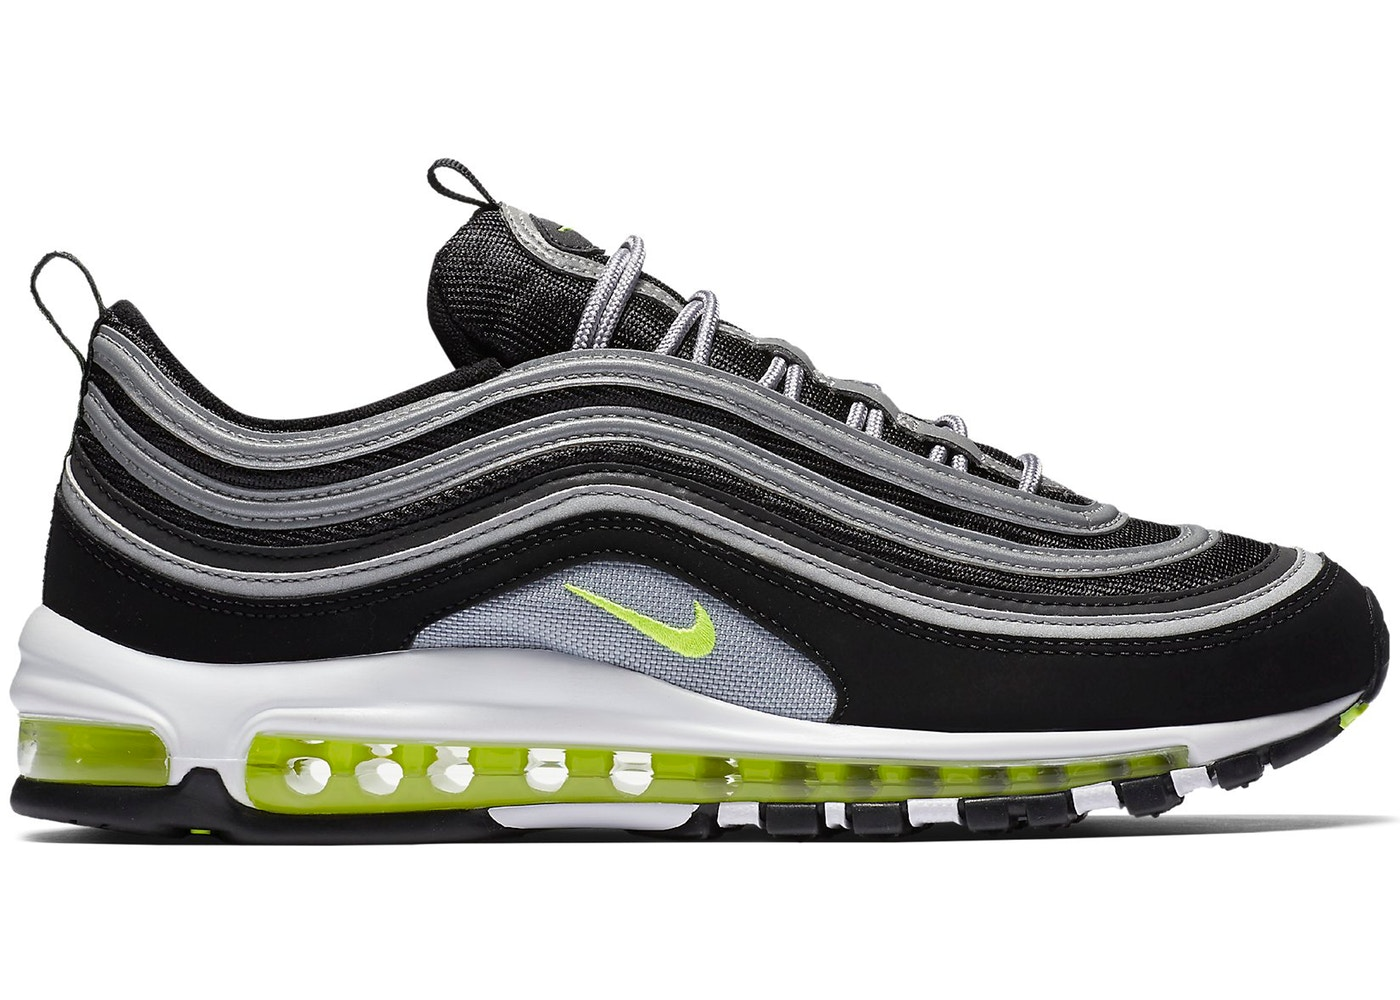 Nike Air Max 97 Women's Running Shoes Dark Grey/Volt/Stealth